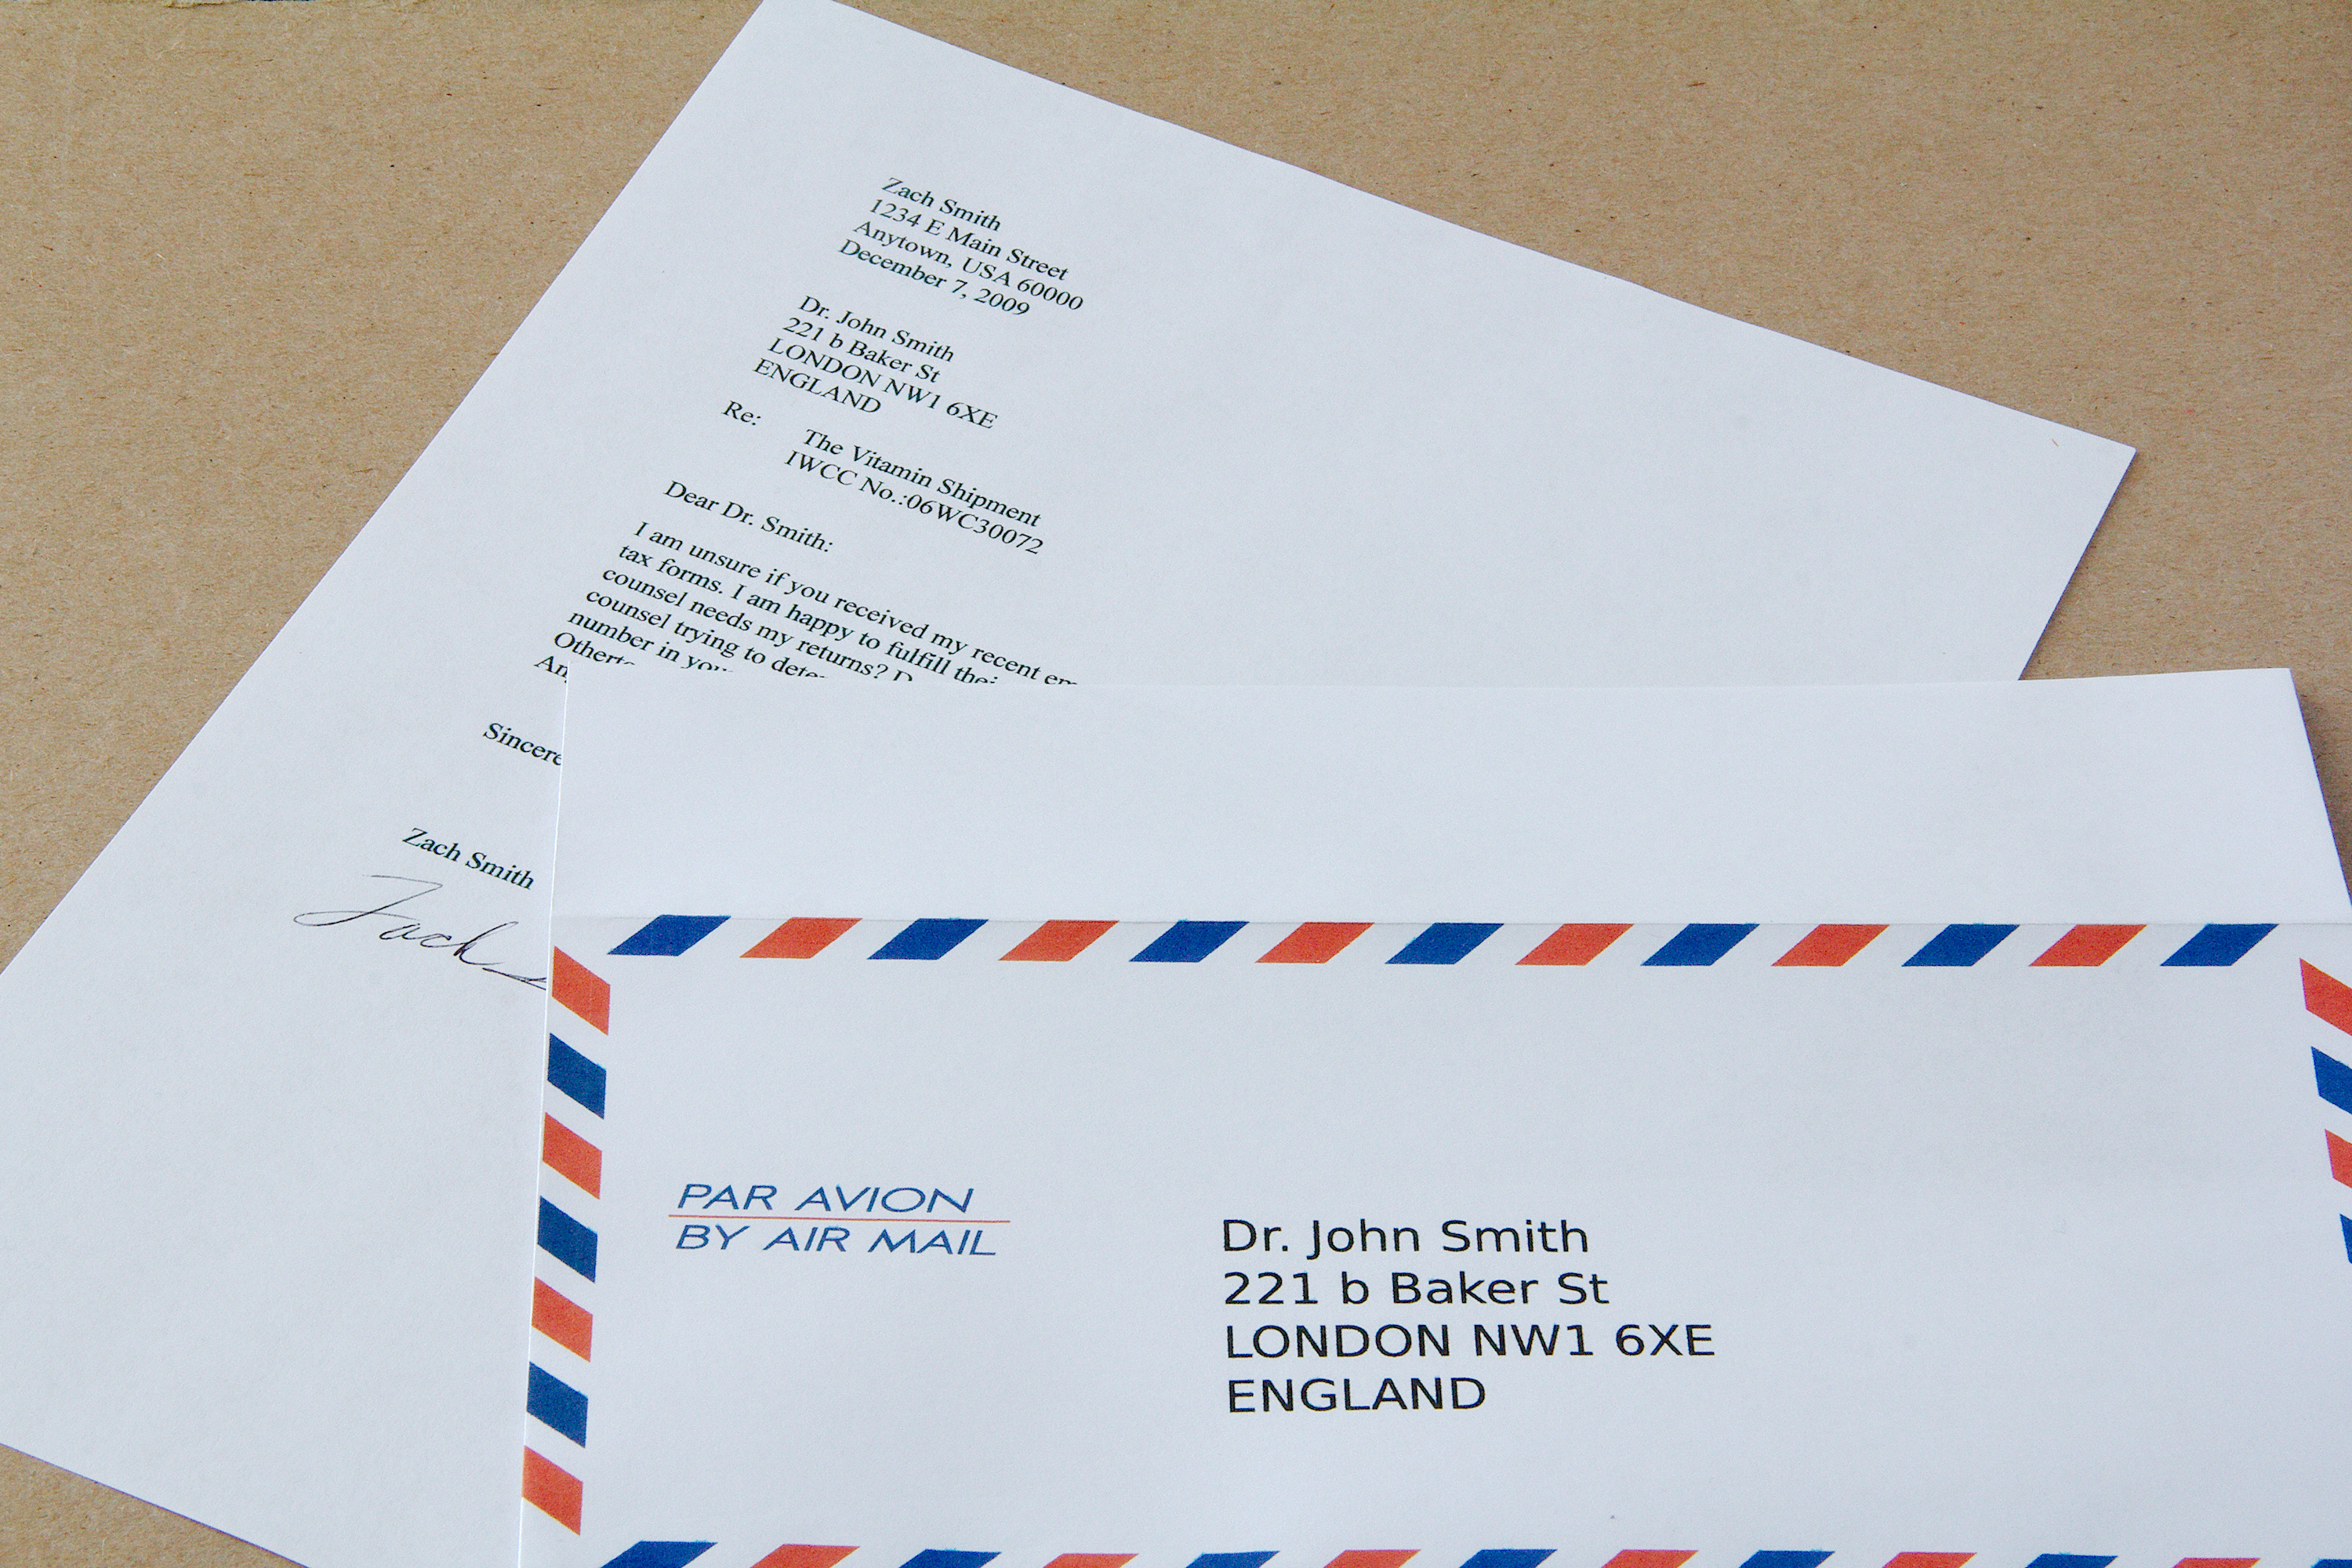 How to address envelope from Italy to US